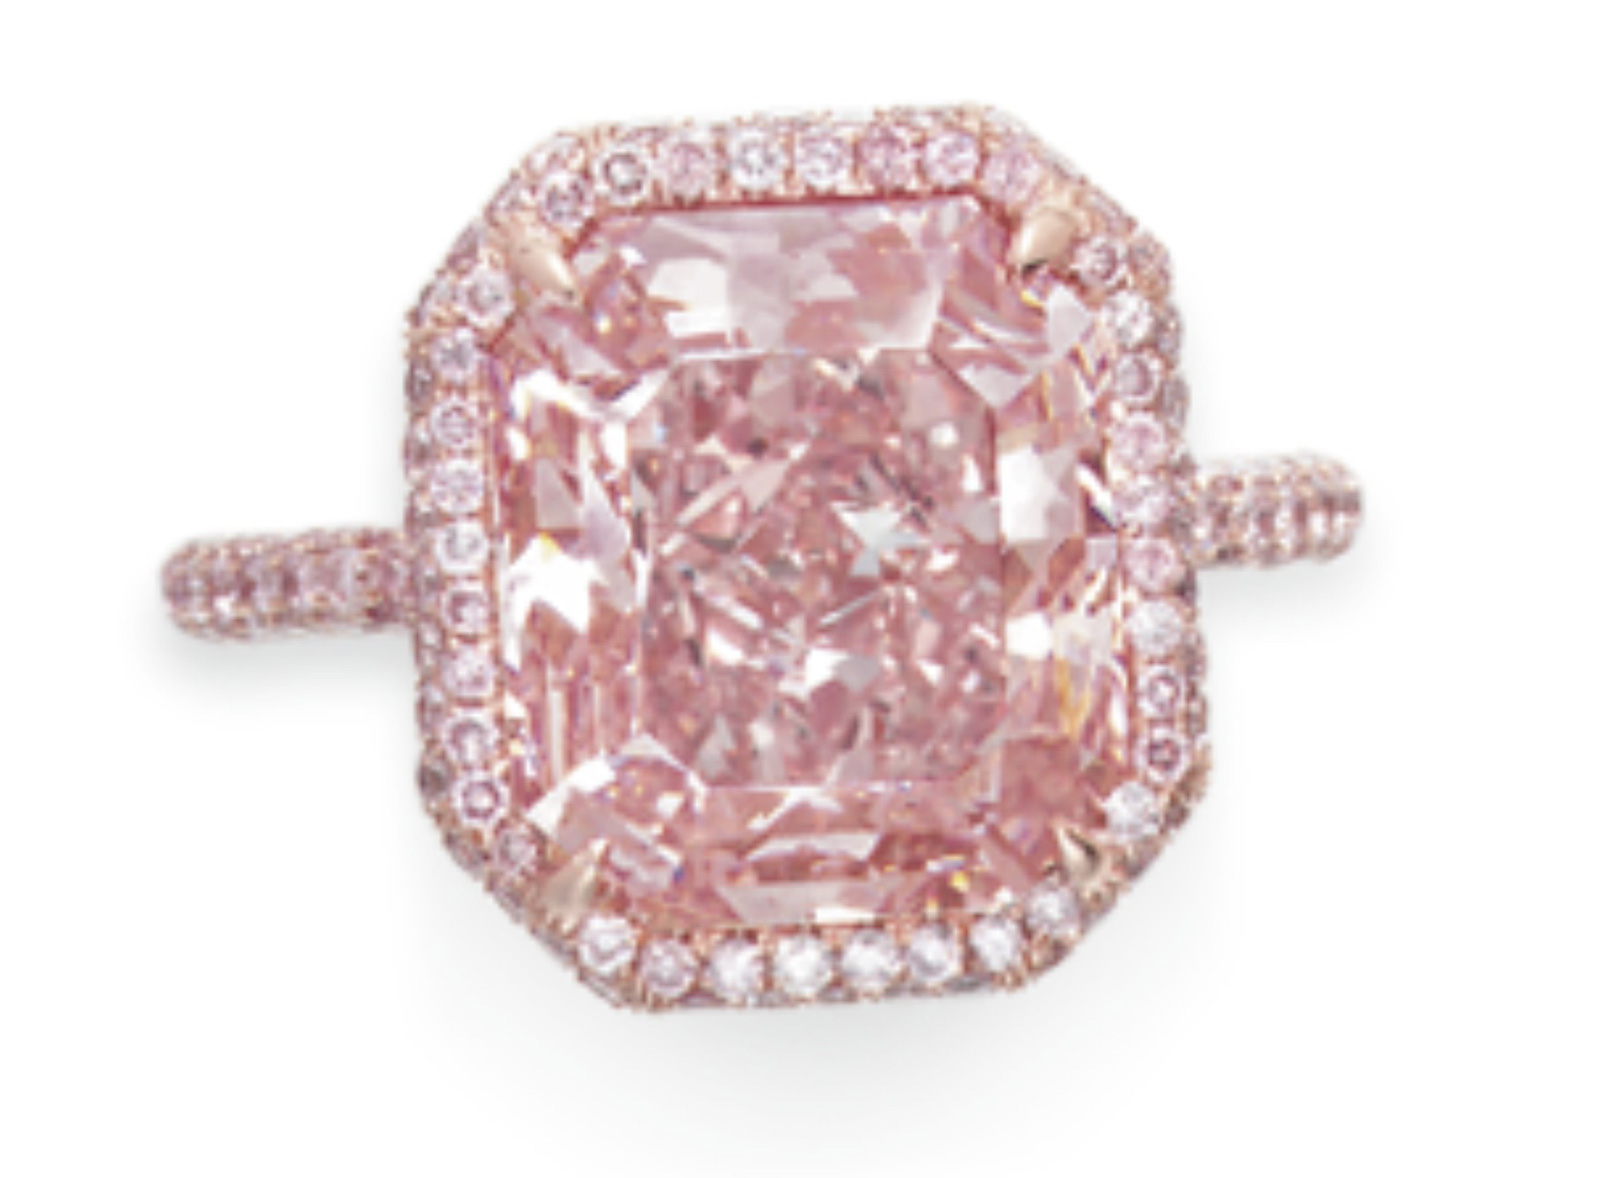 A-modified-rectangular-cut-Fancy-Vivid-Purple-Pink-diamond-of-6.89-carats-1